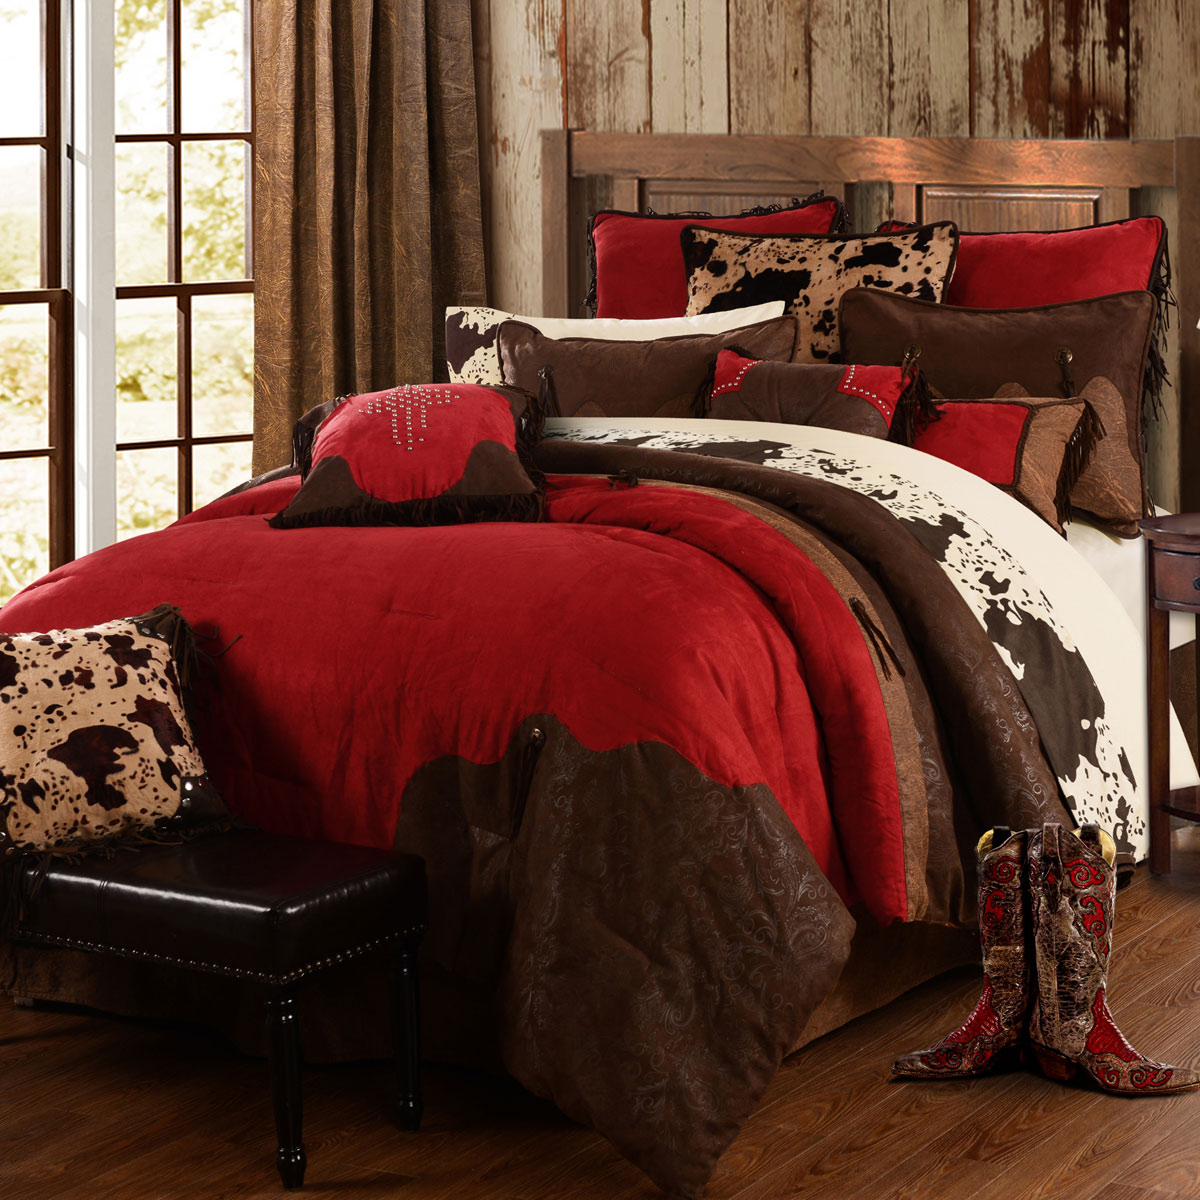 Red Rodeo Bed Set - King